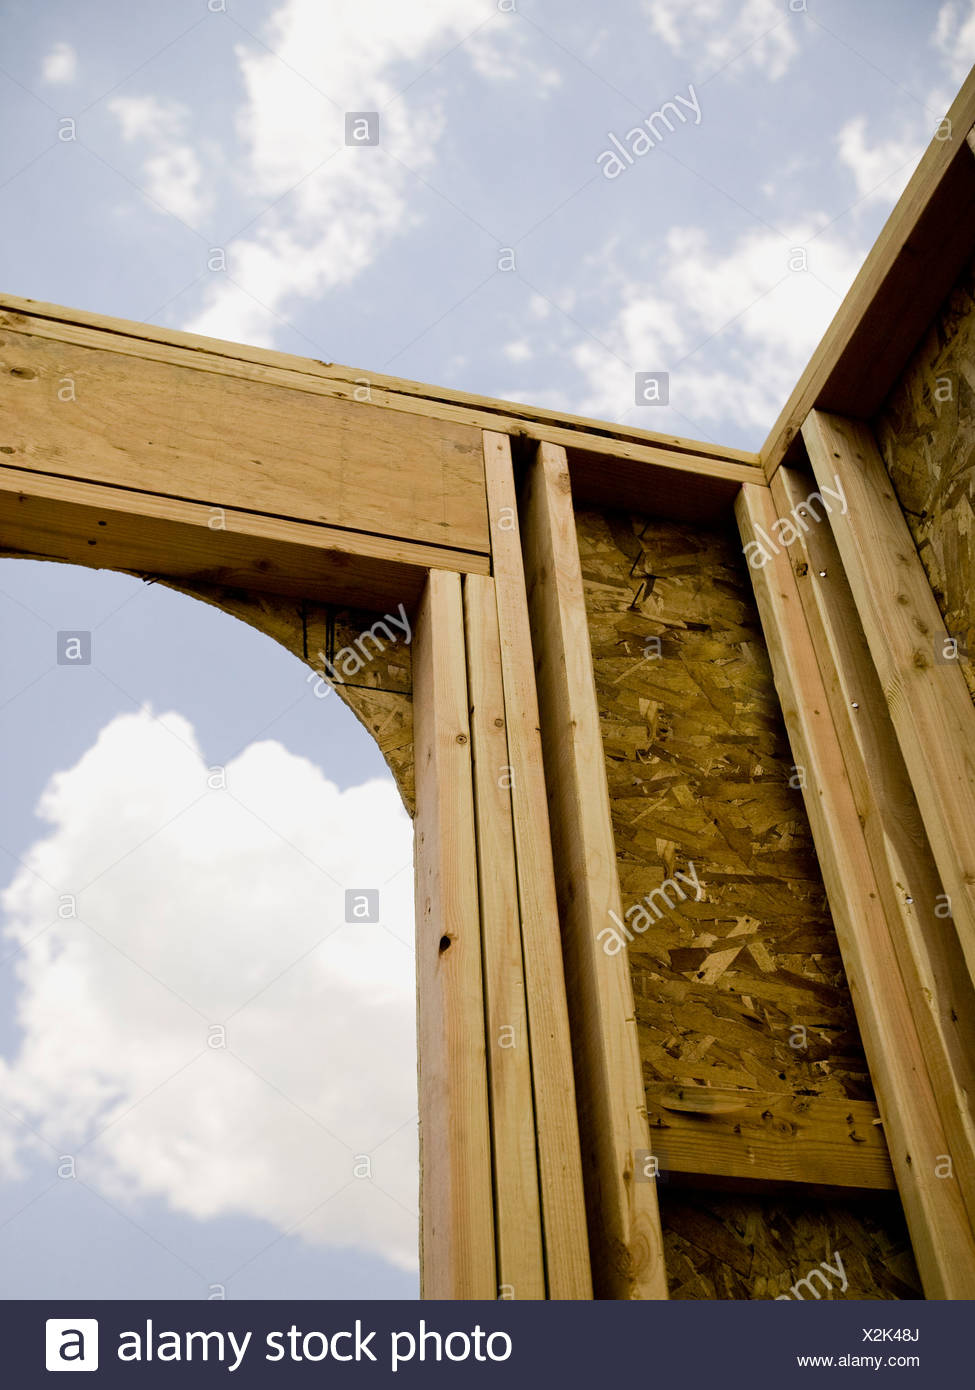 Construction job site. - Stock Image